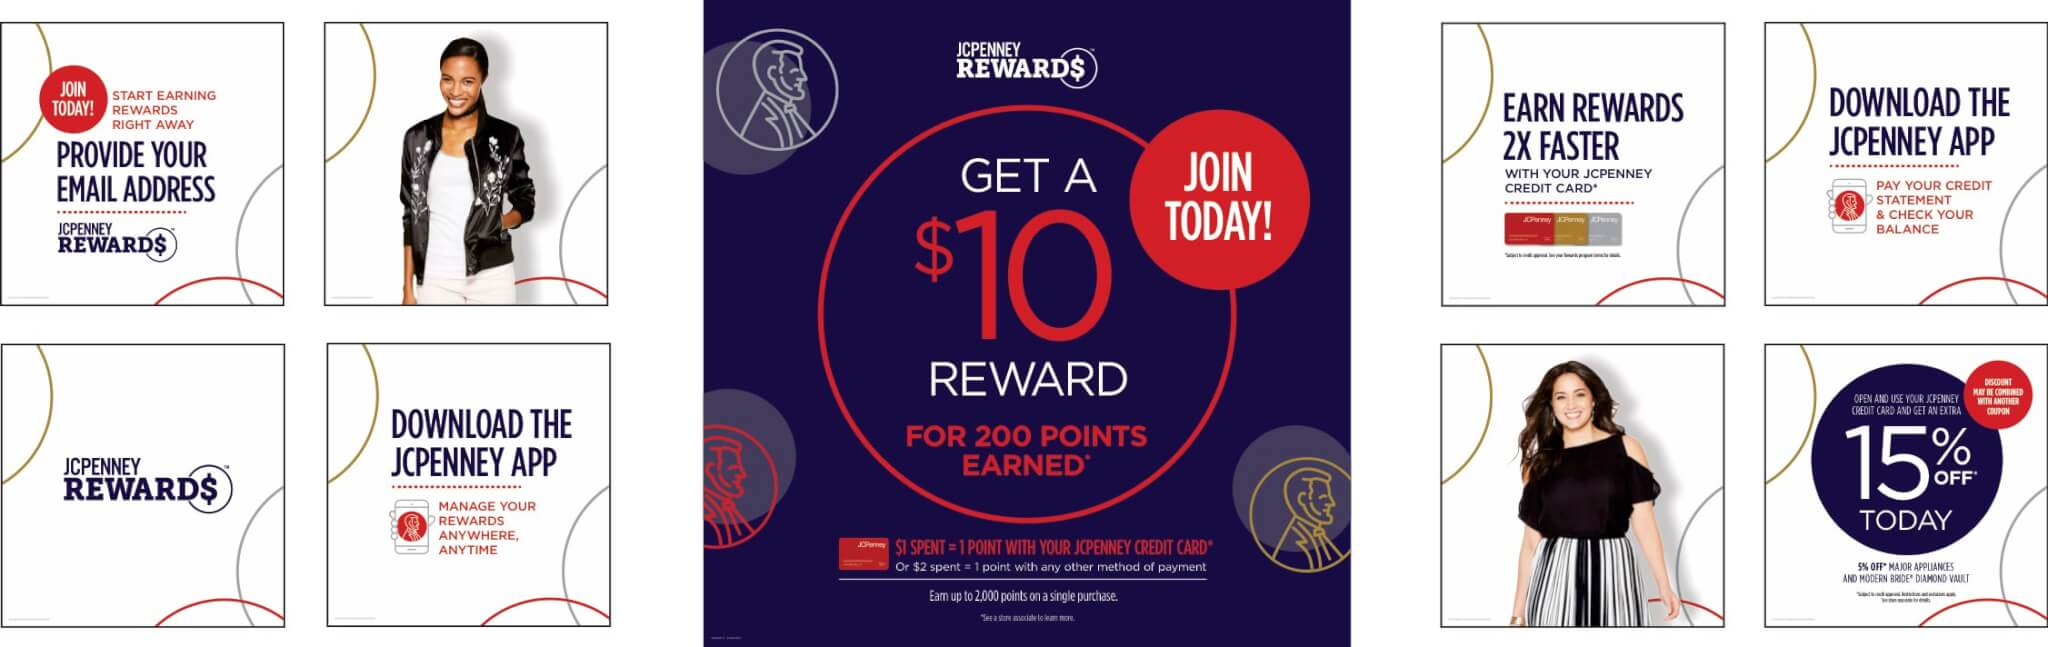 JCPenney Launched a New Rewards Program